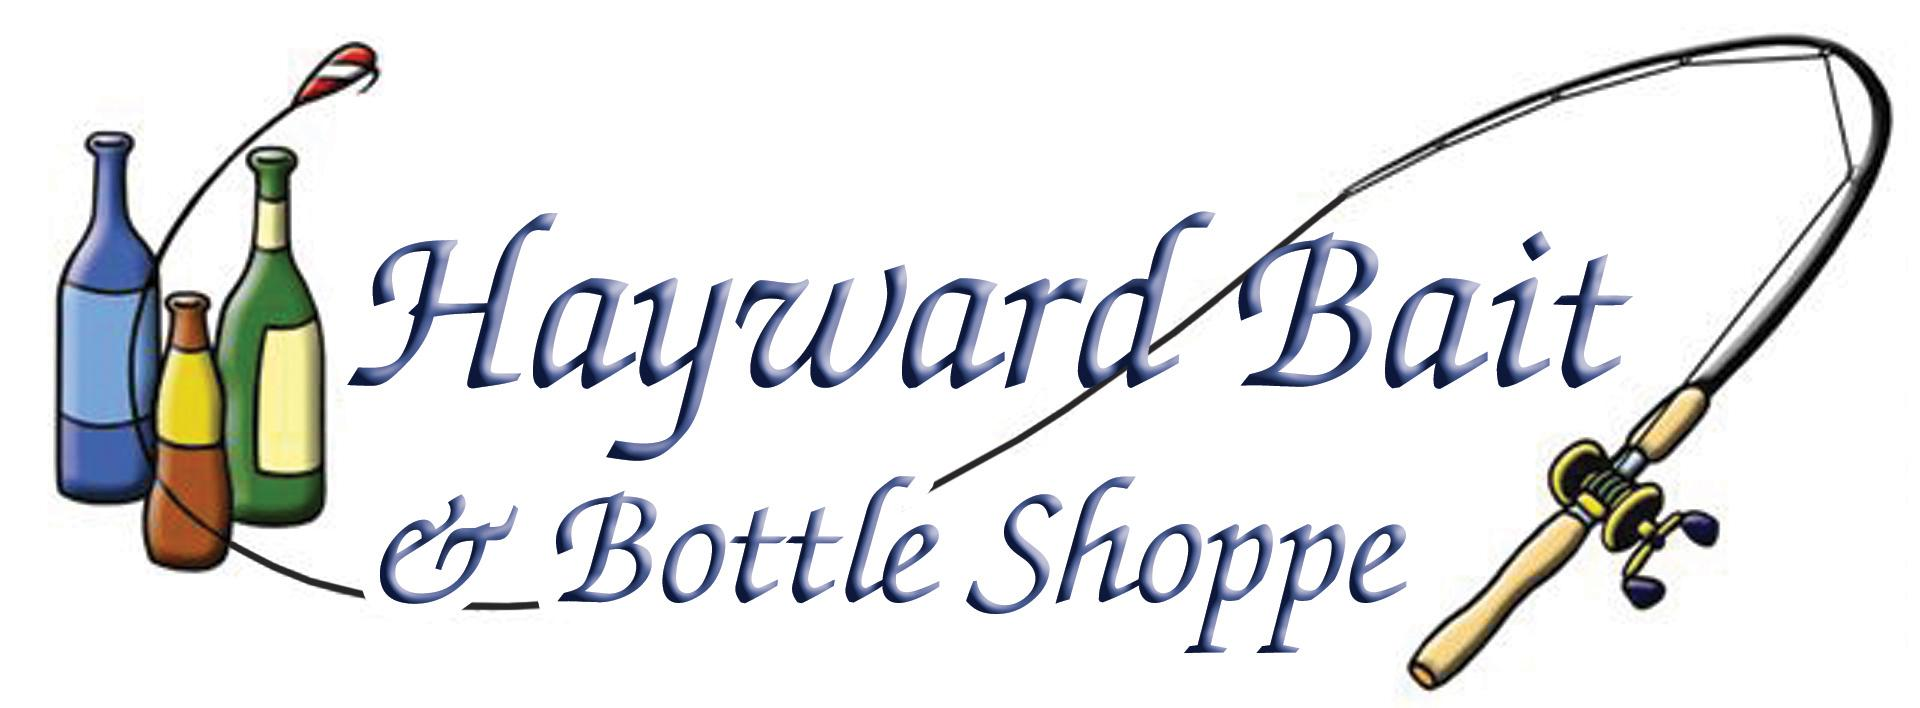 Hayward Bait & Bottle Shoppe Home Page